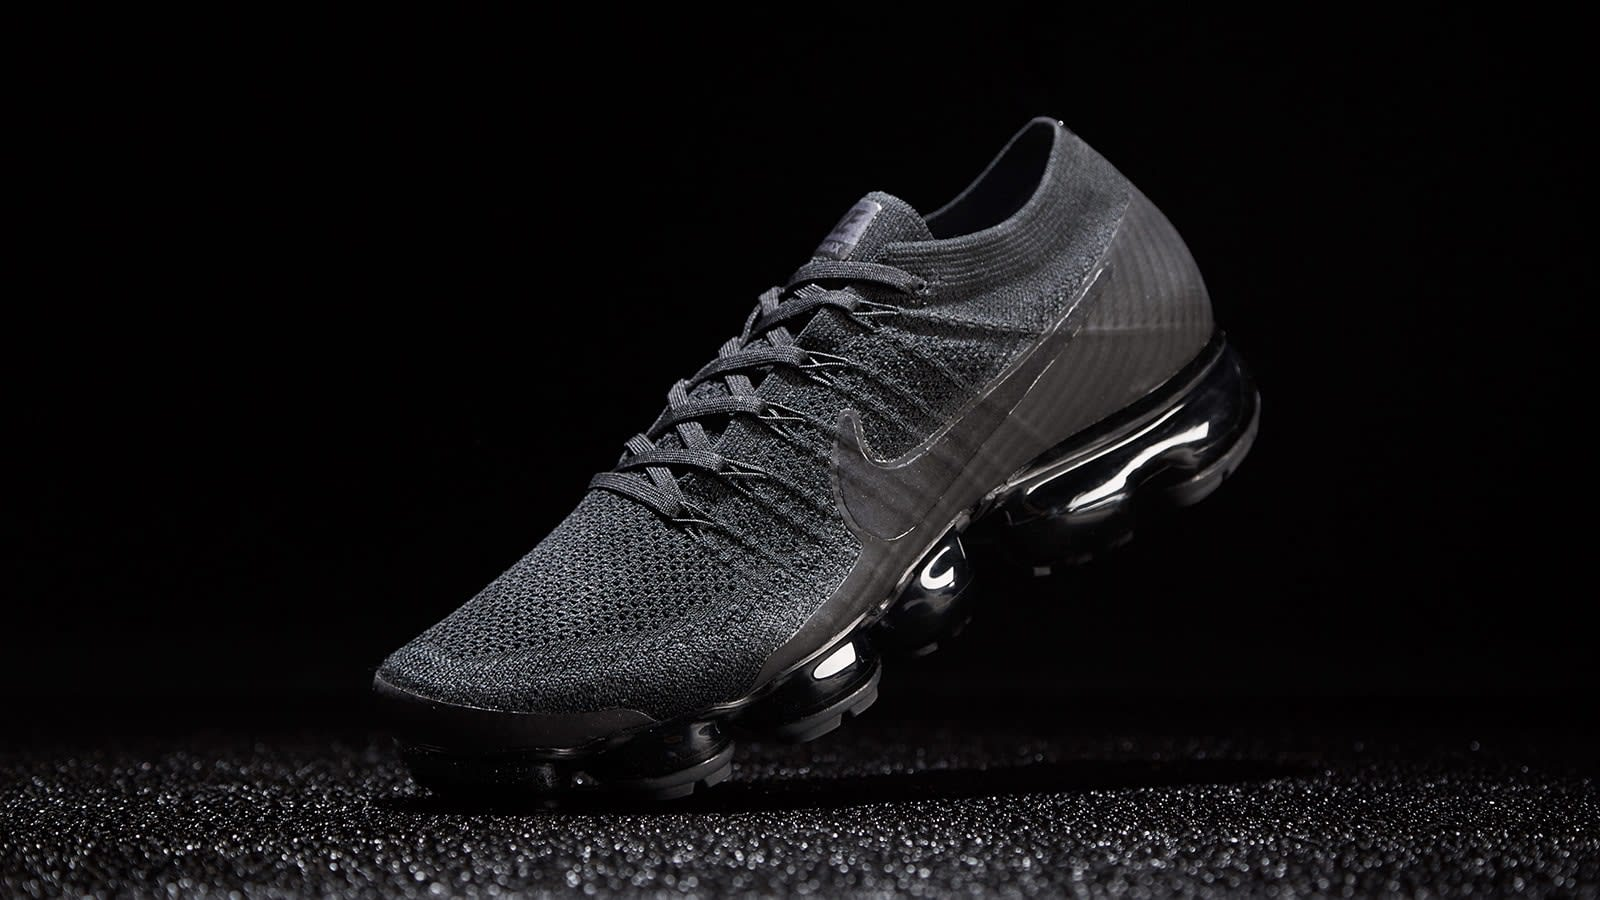 San Francisco 16836 13209 END. Features | Nike Air Vapormax Flyknit 'Triple Noir ...